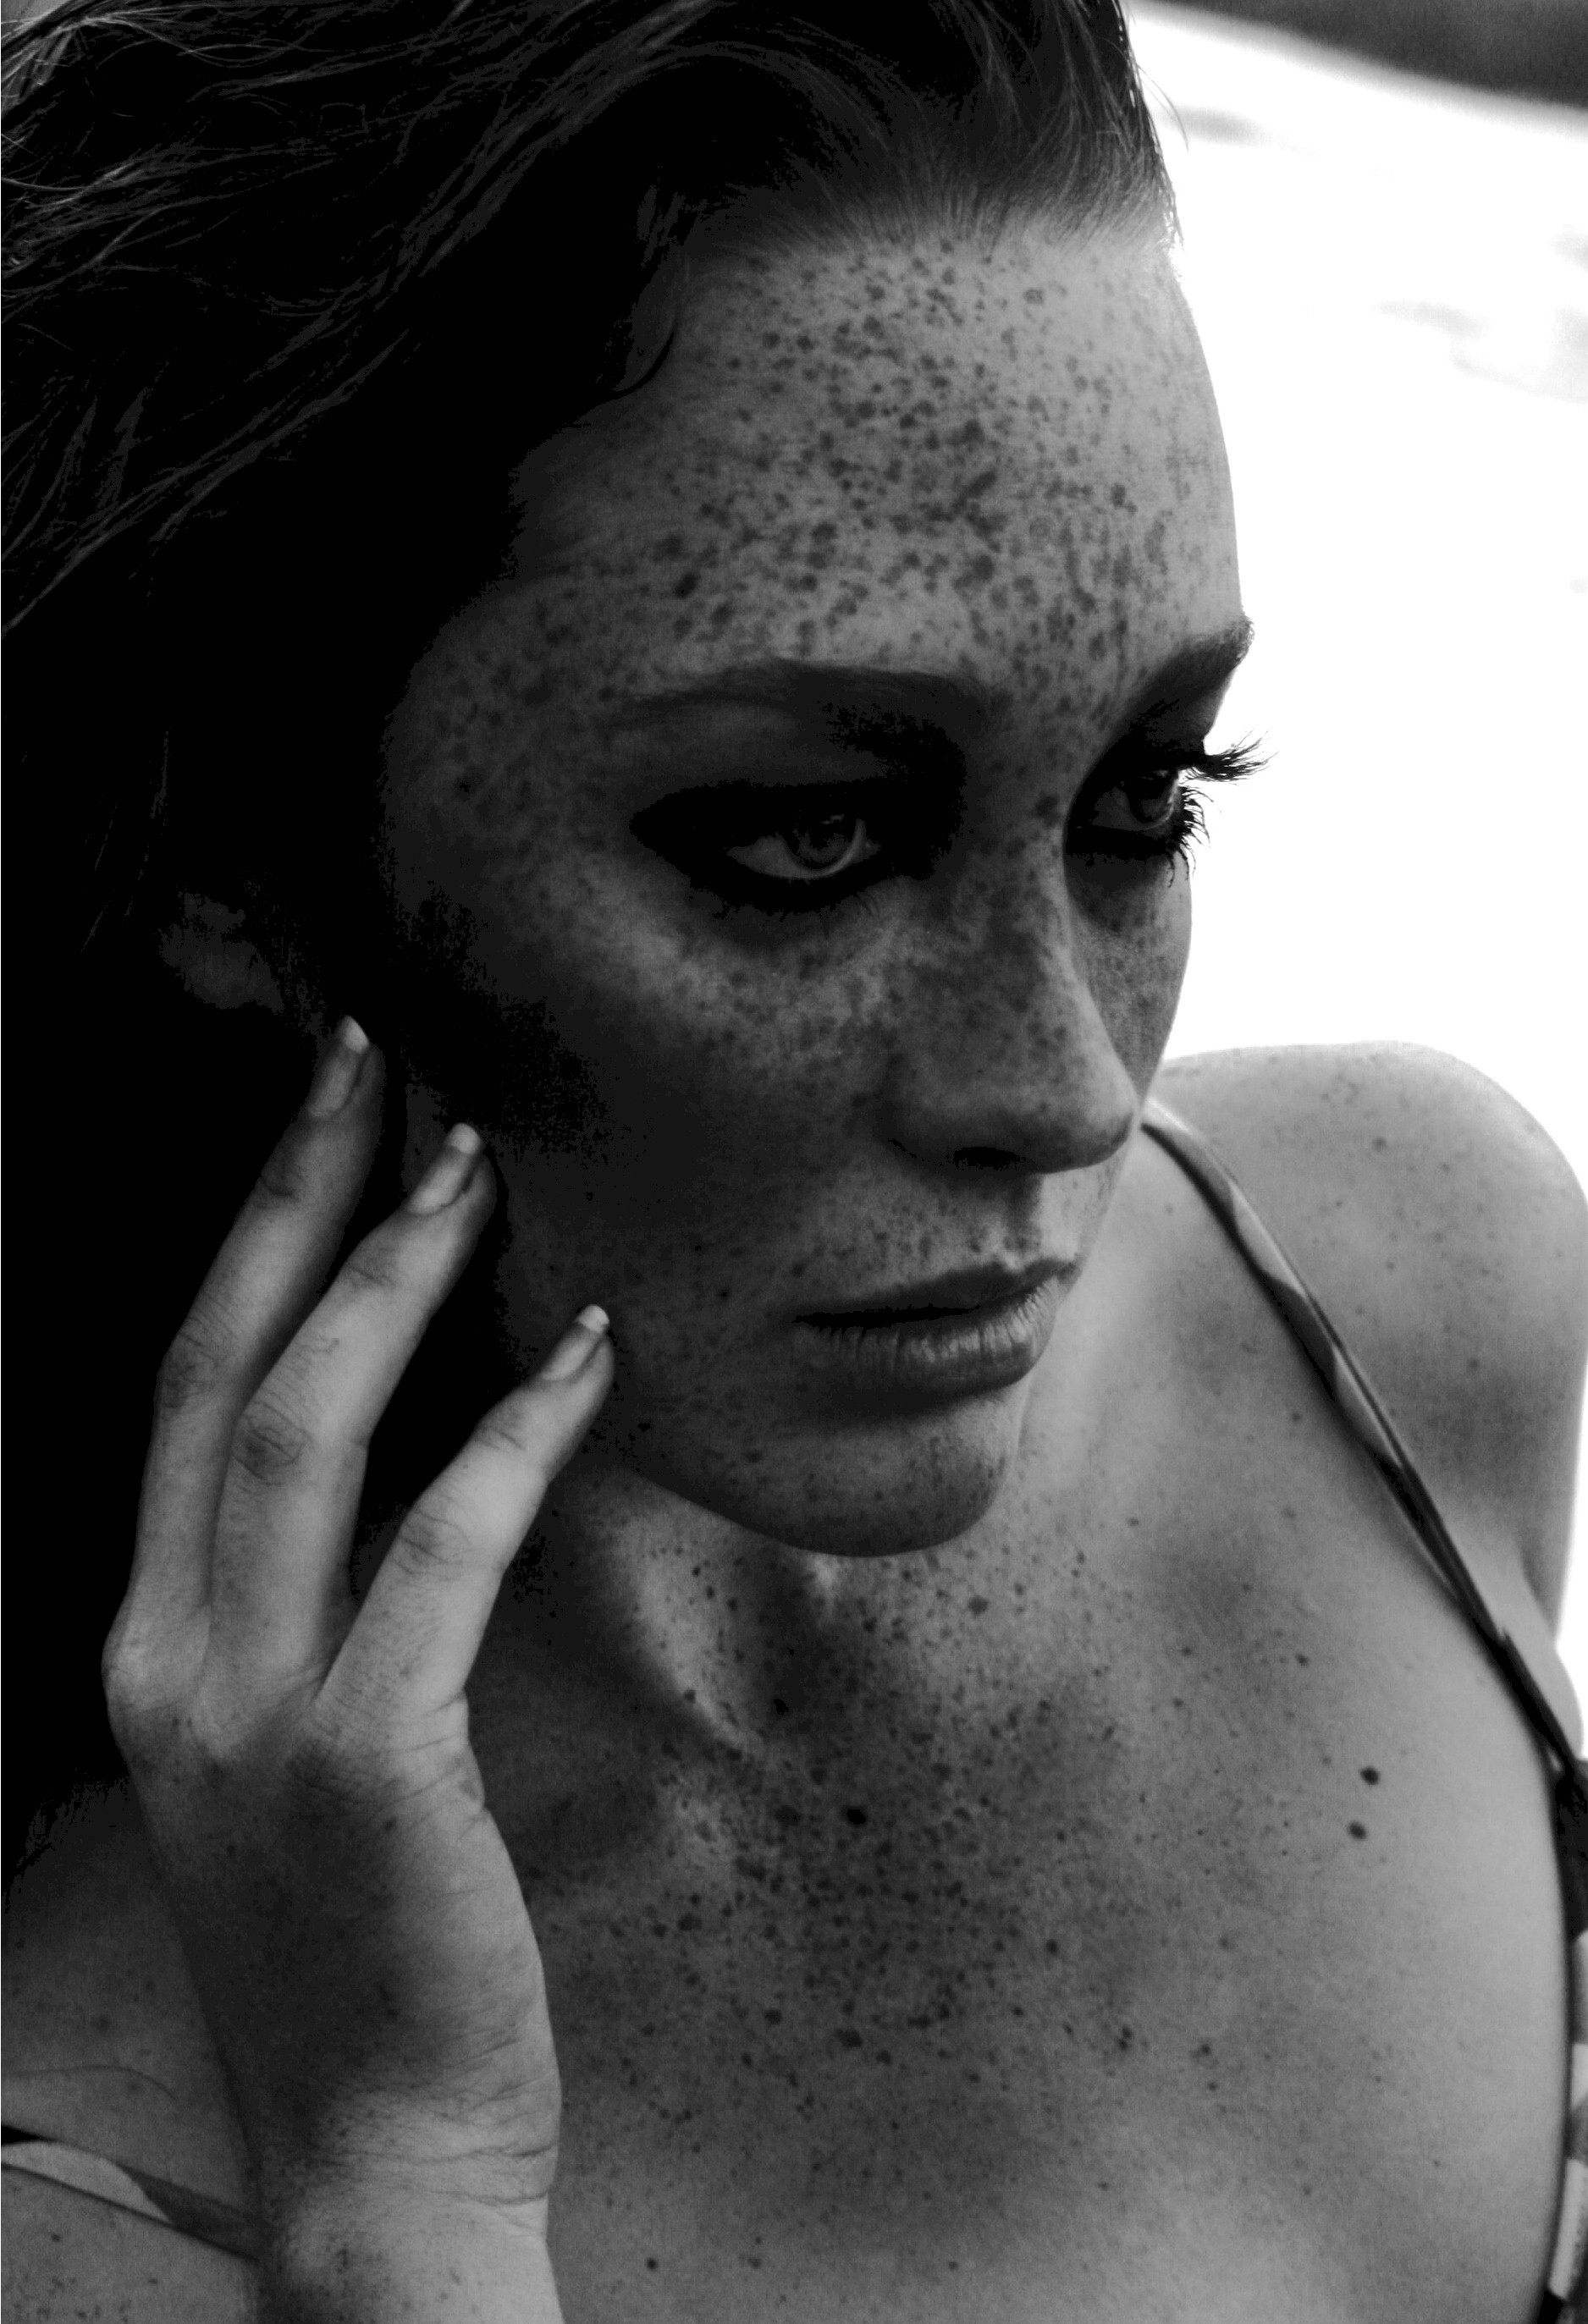 woman freckles grayscale monochrome